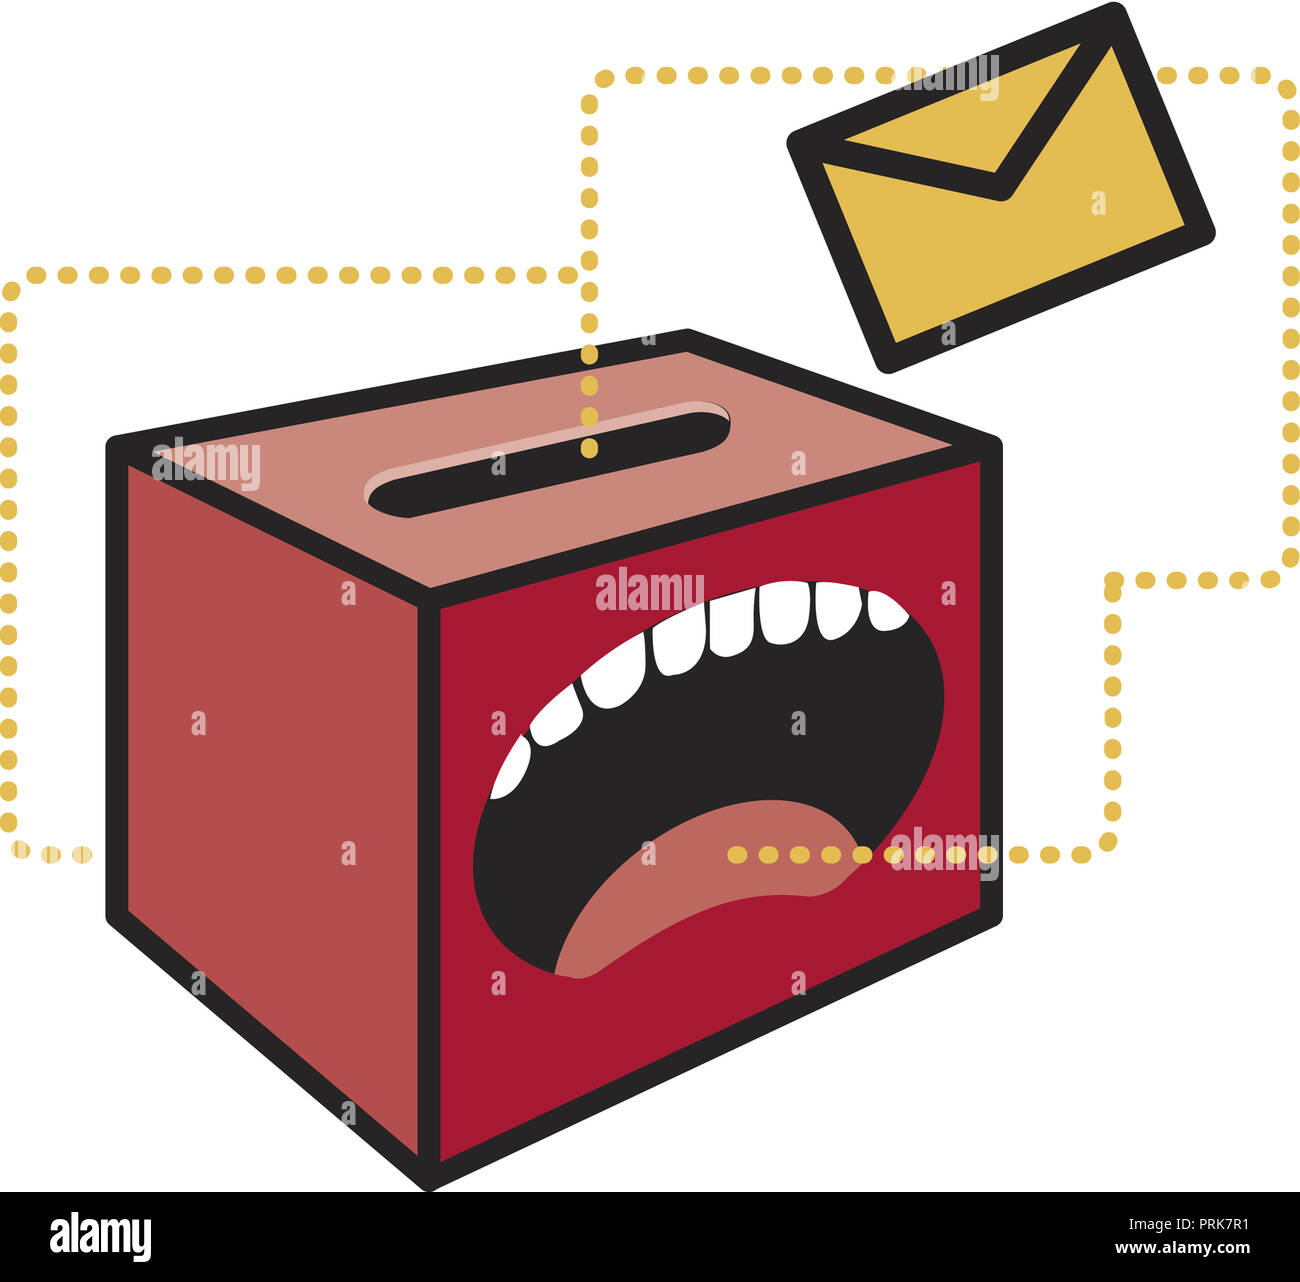 shouting box with letter - Stock Image